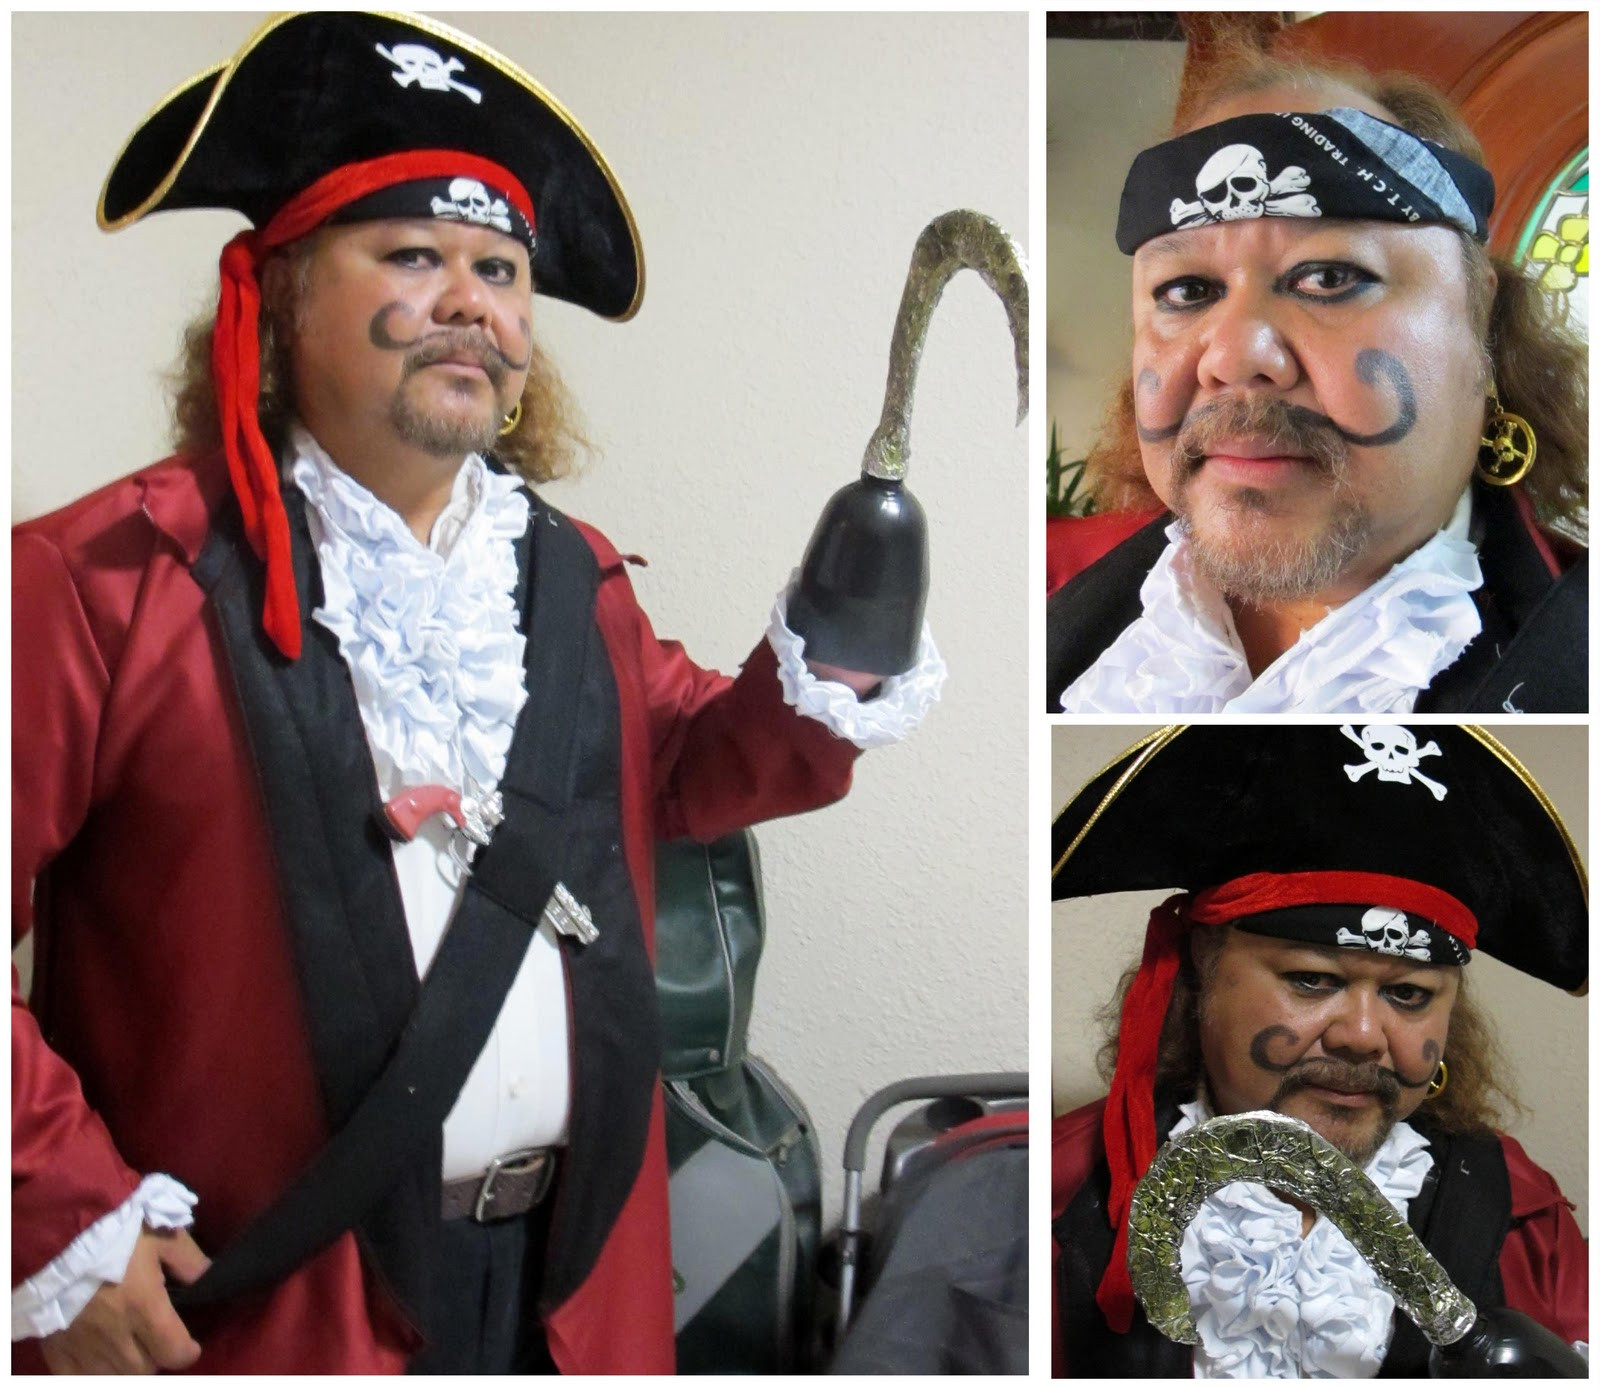 Best ideas about DIY Captain Hook Costume . Save or Pin Rabbit The Penguin DIY Captain Hook Costume Now.